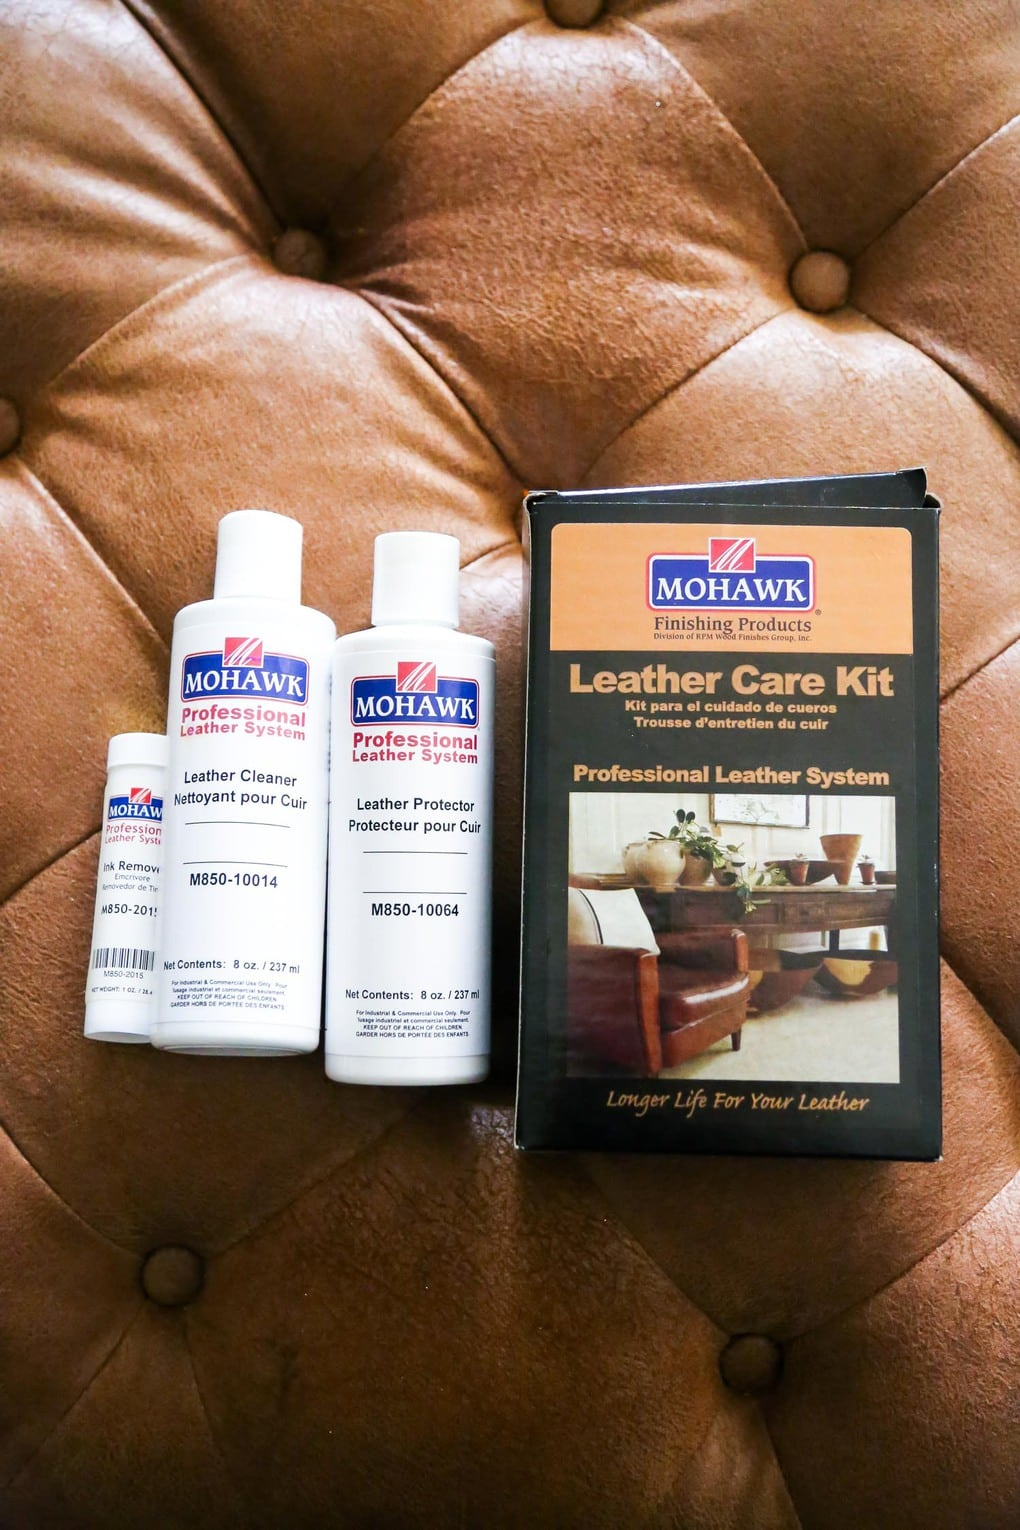 Mohawk Leather Care Kit - leather cleaner for ottoman